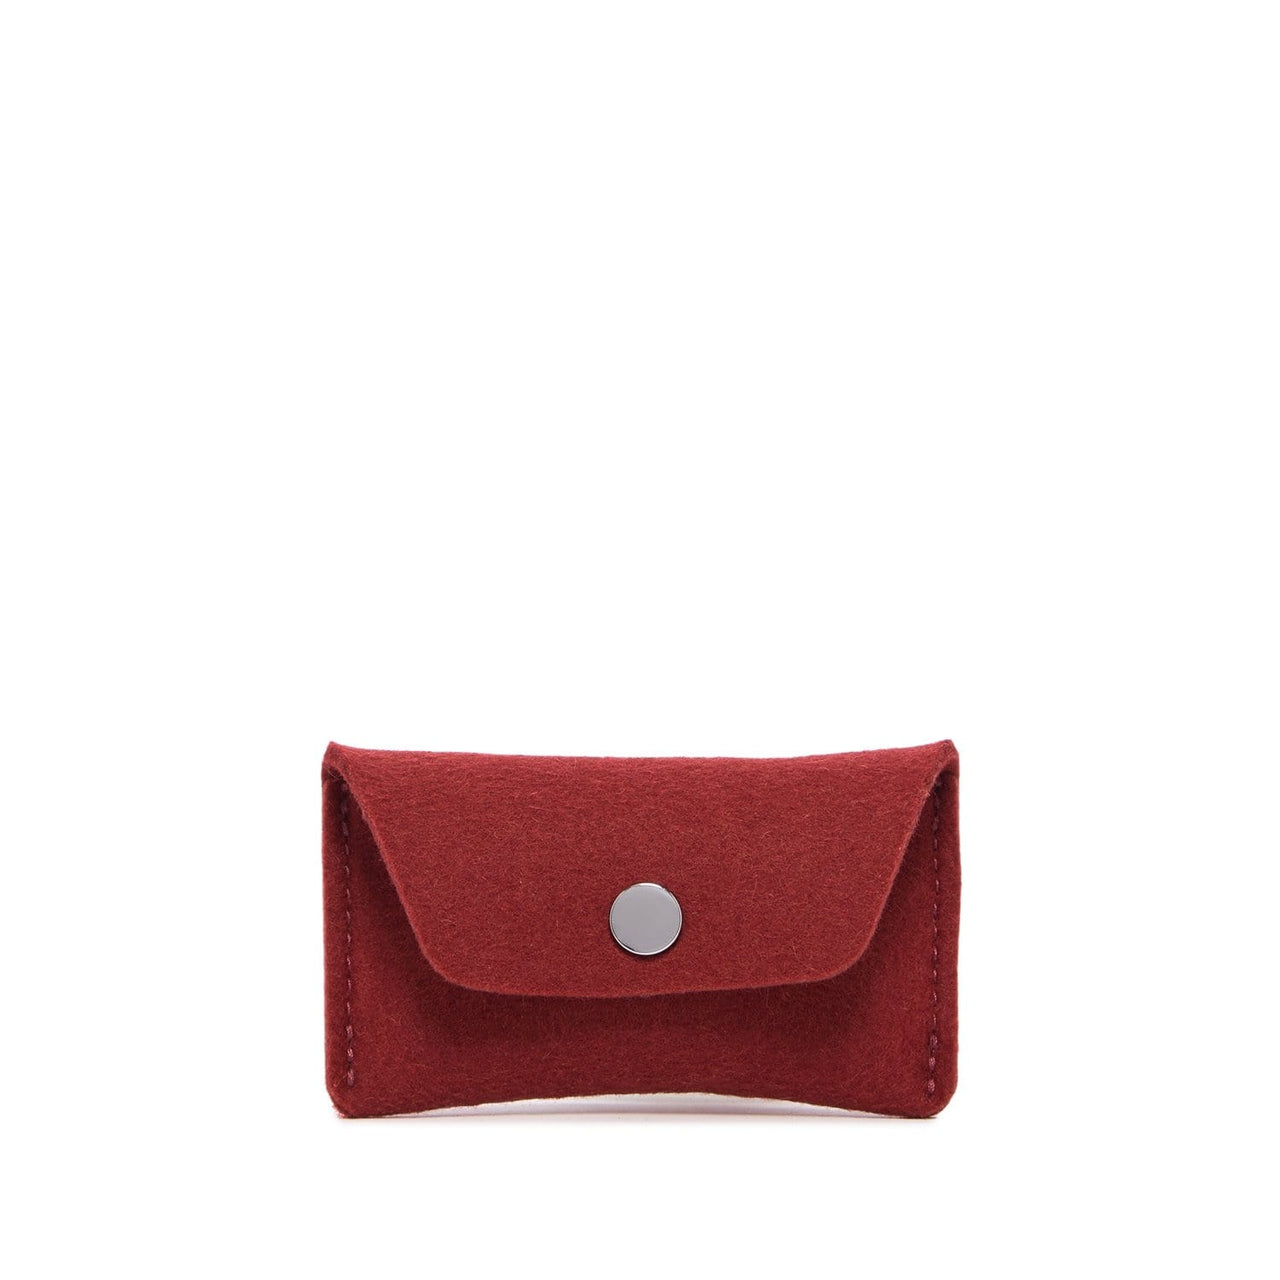 Graf Lantz Wallets, Pouches & Accessories Rosewood Card Wallet Rosewood Felt